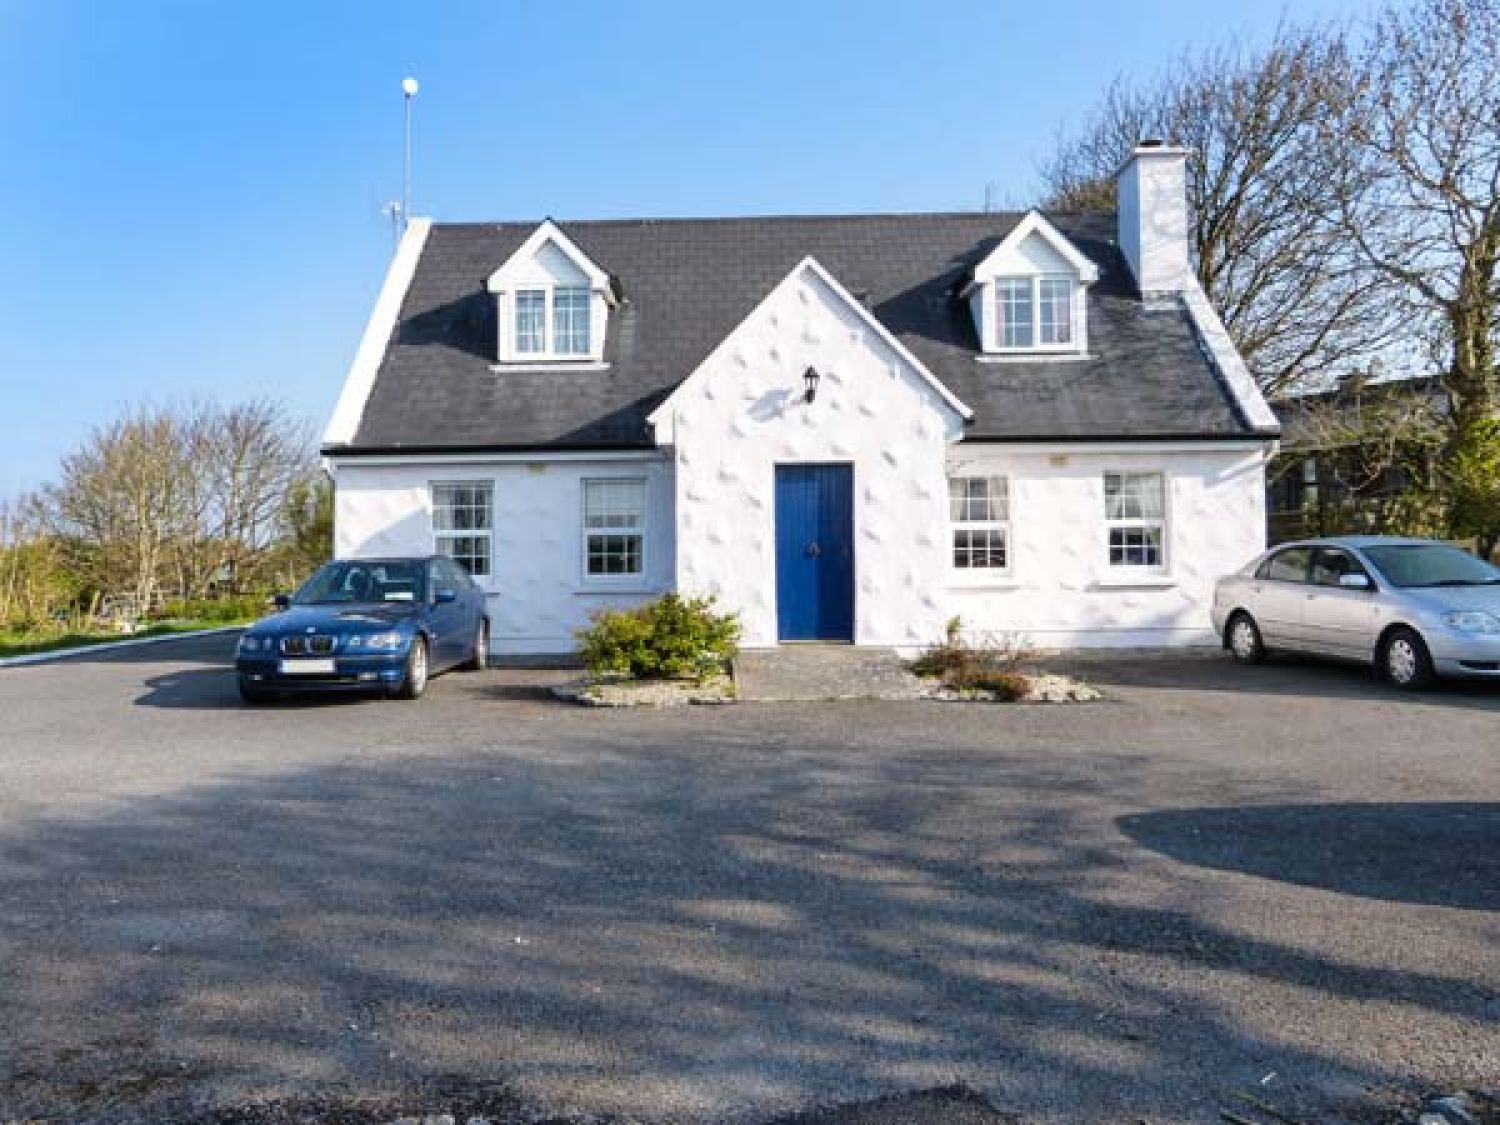 No.1 Apt, Brandy Harbour Cottage - Shancroagh & County Galway - 951117 - photo 1